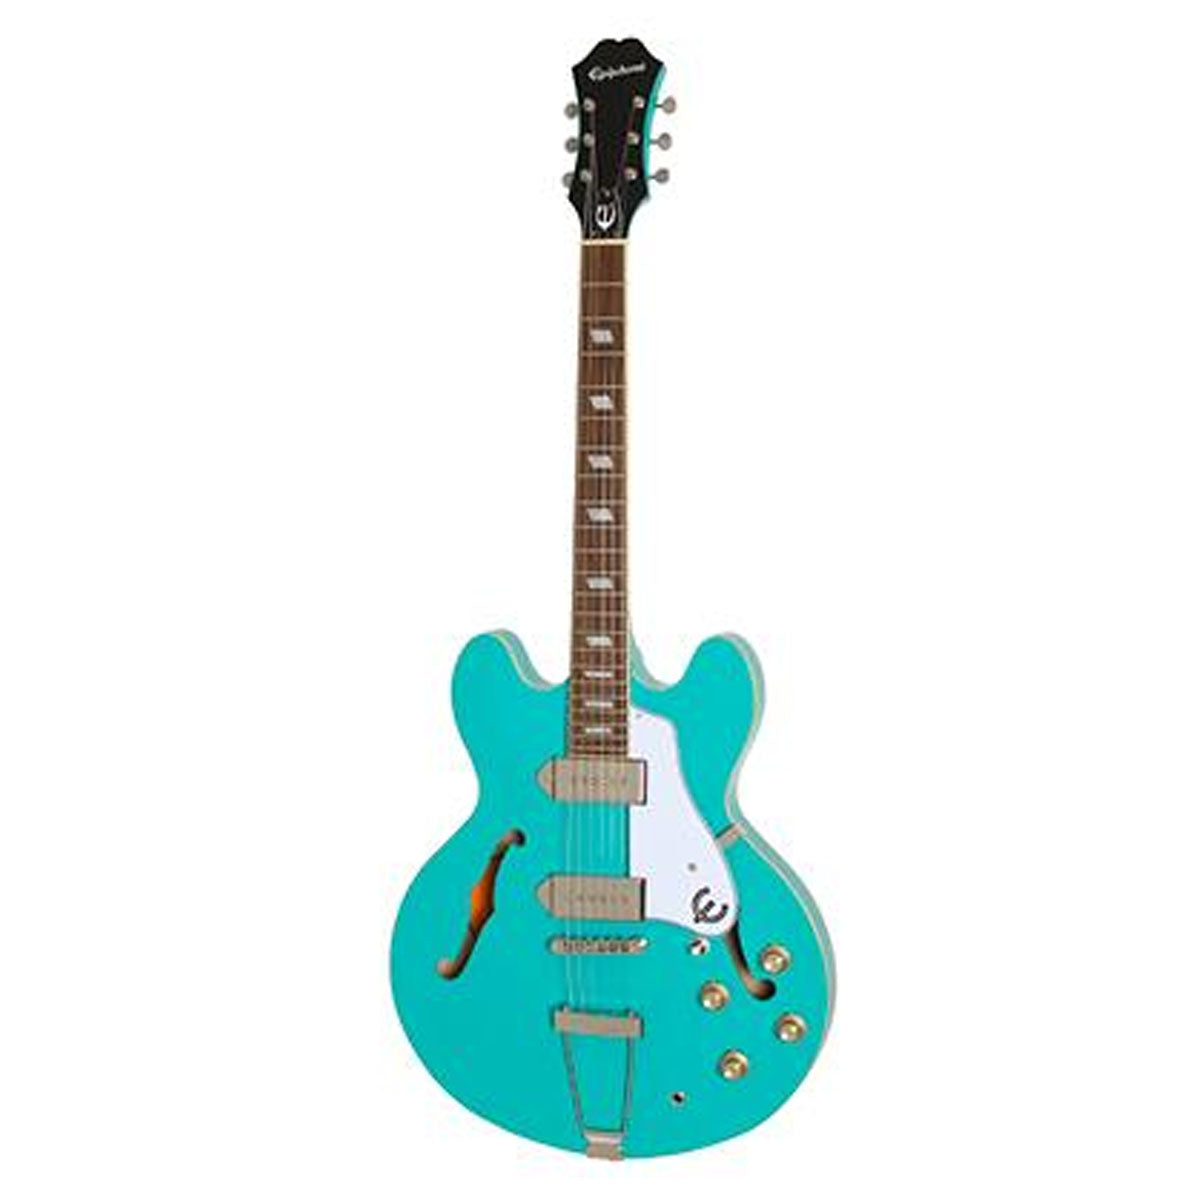 Epiphone Casino Electric Guitar HollowBody Turquoise - ETCATQCH1